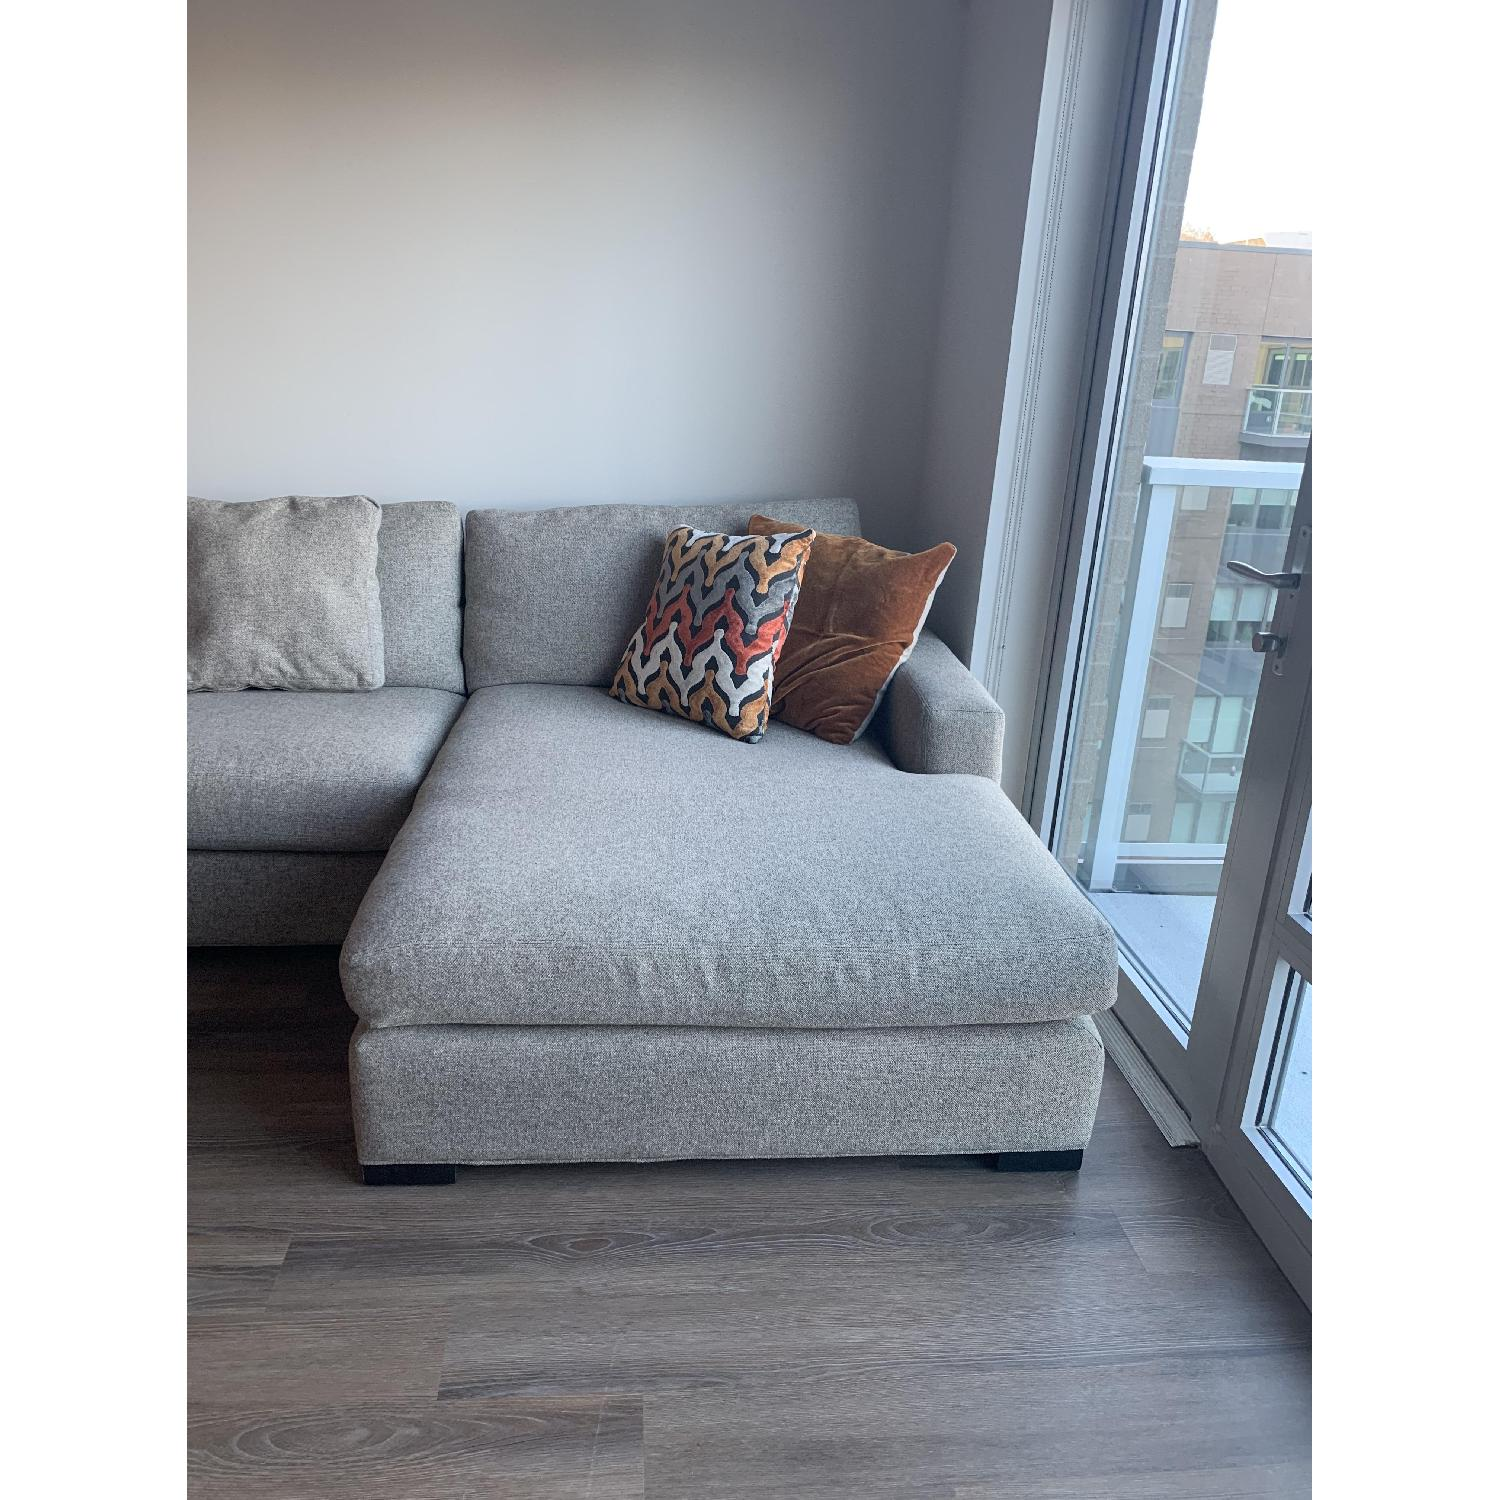 Room & Board Metro Grey Sectional Sofa w/ Right Chaise - image-3